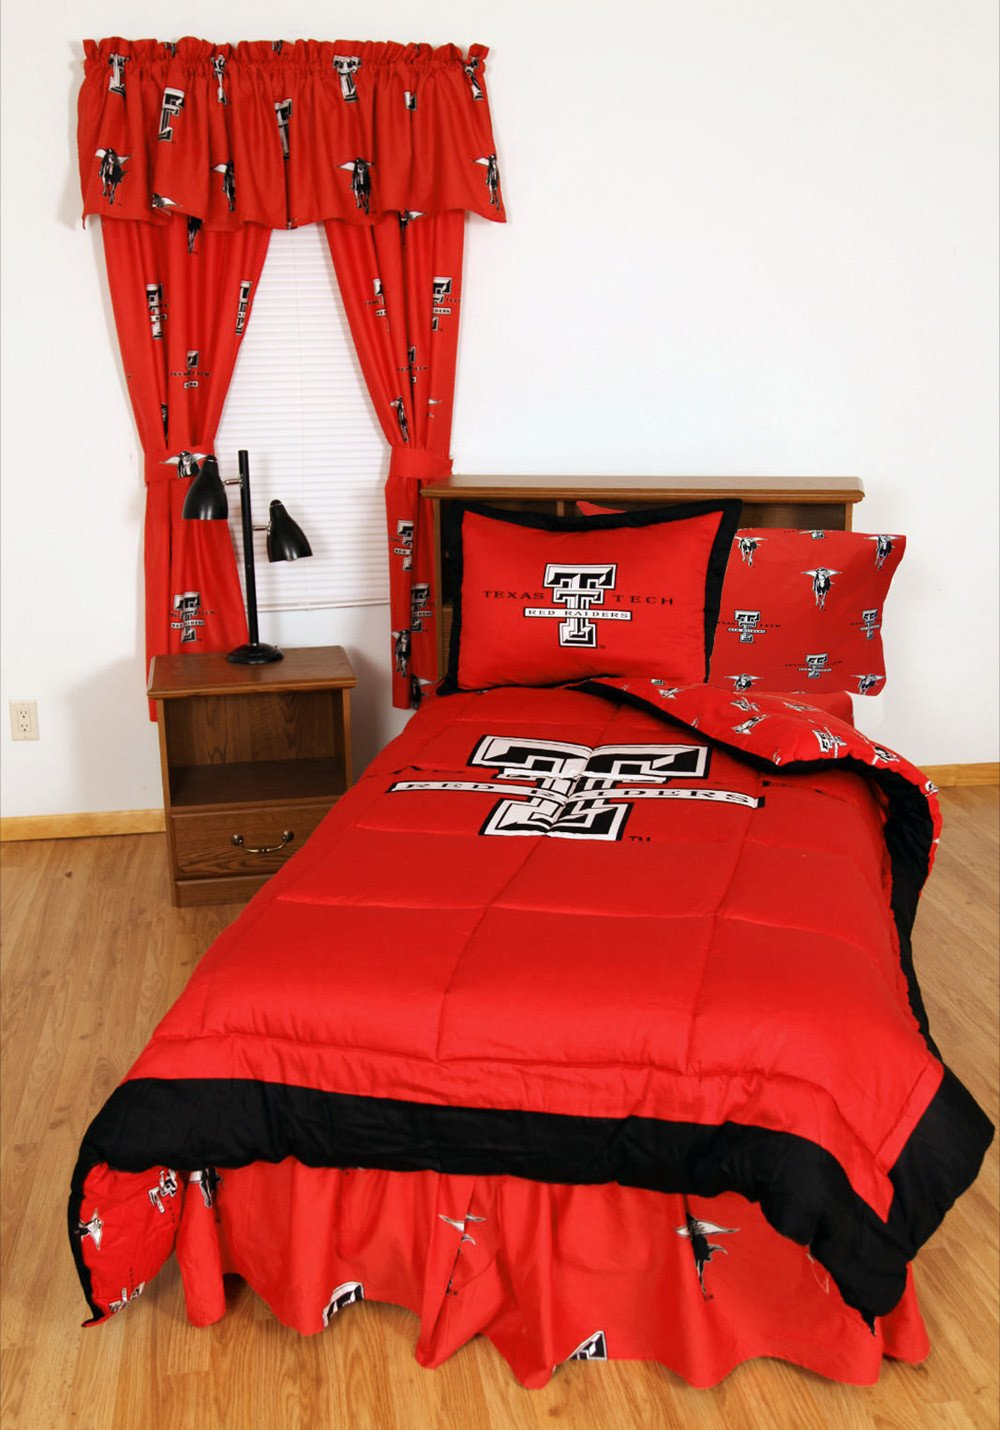 Texas Tech Bed in a Bag Queen - With Team Colored Sheets - TTUBBQU by College Covers from College Covers